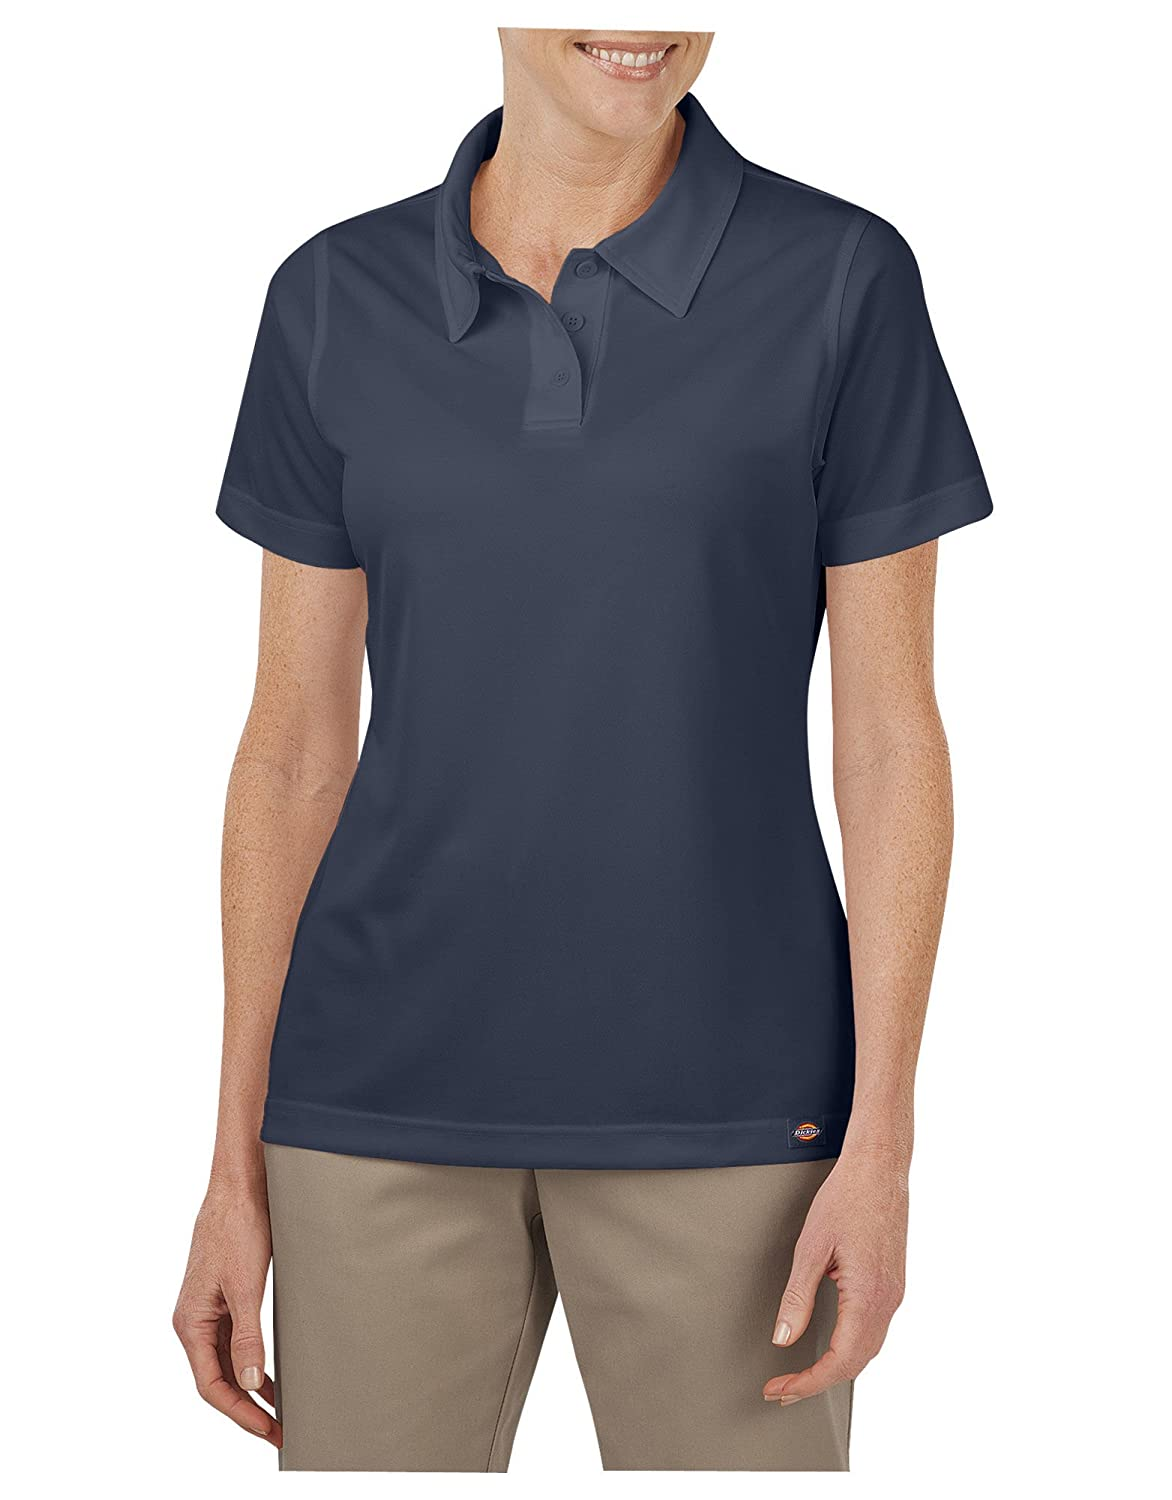 Large Dickies Occupational Workwear FS405DNL FS405 Womens Performance Short Sleeve Polo Dark Navy Fabric